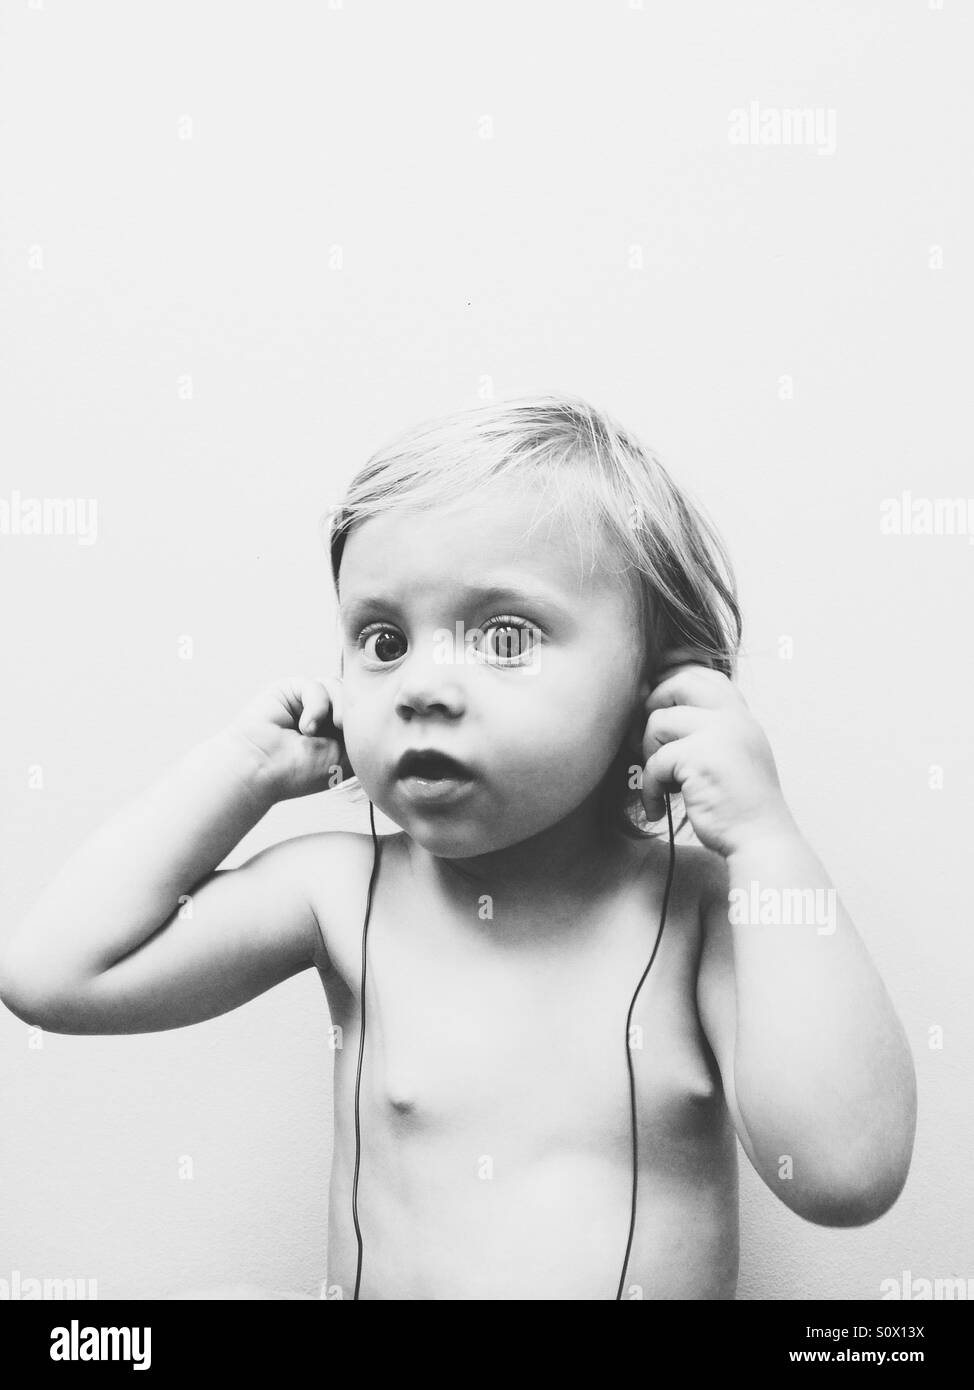 Baby girl listening to music. - Stock Image